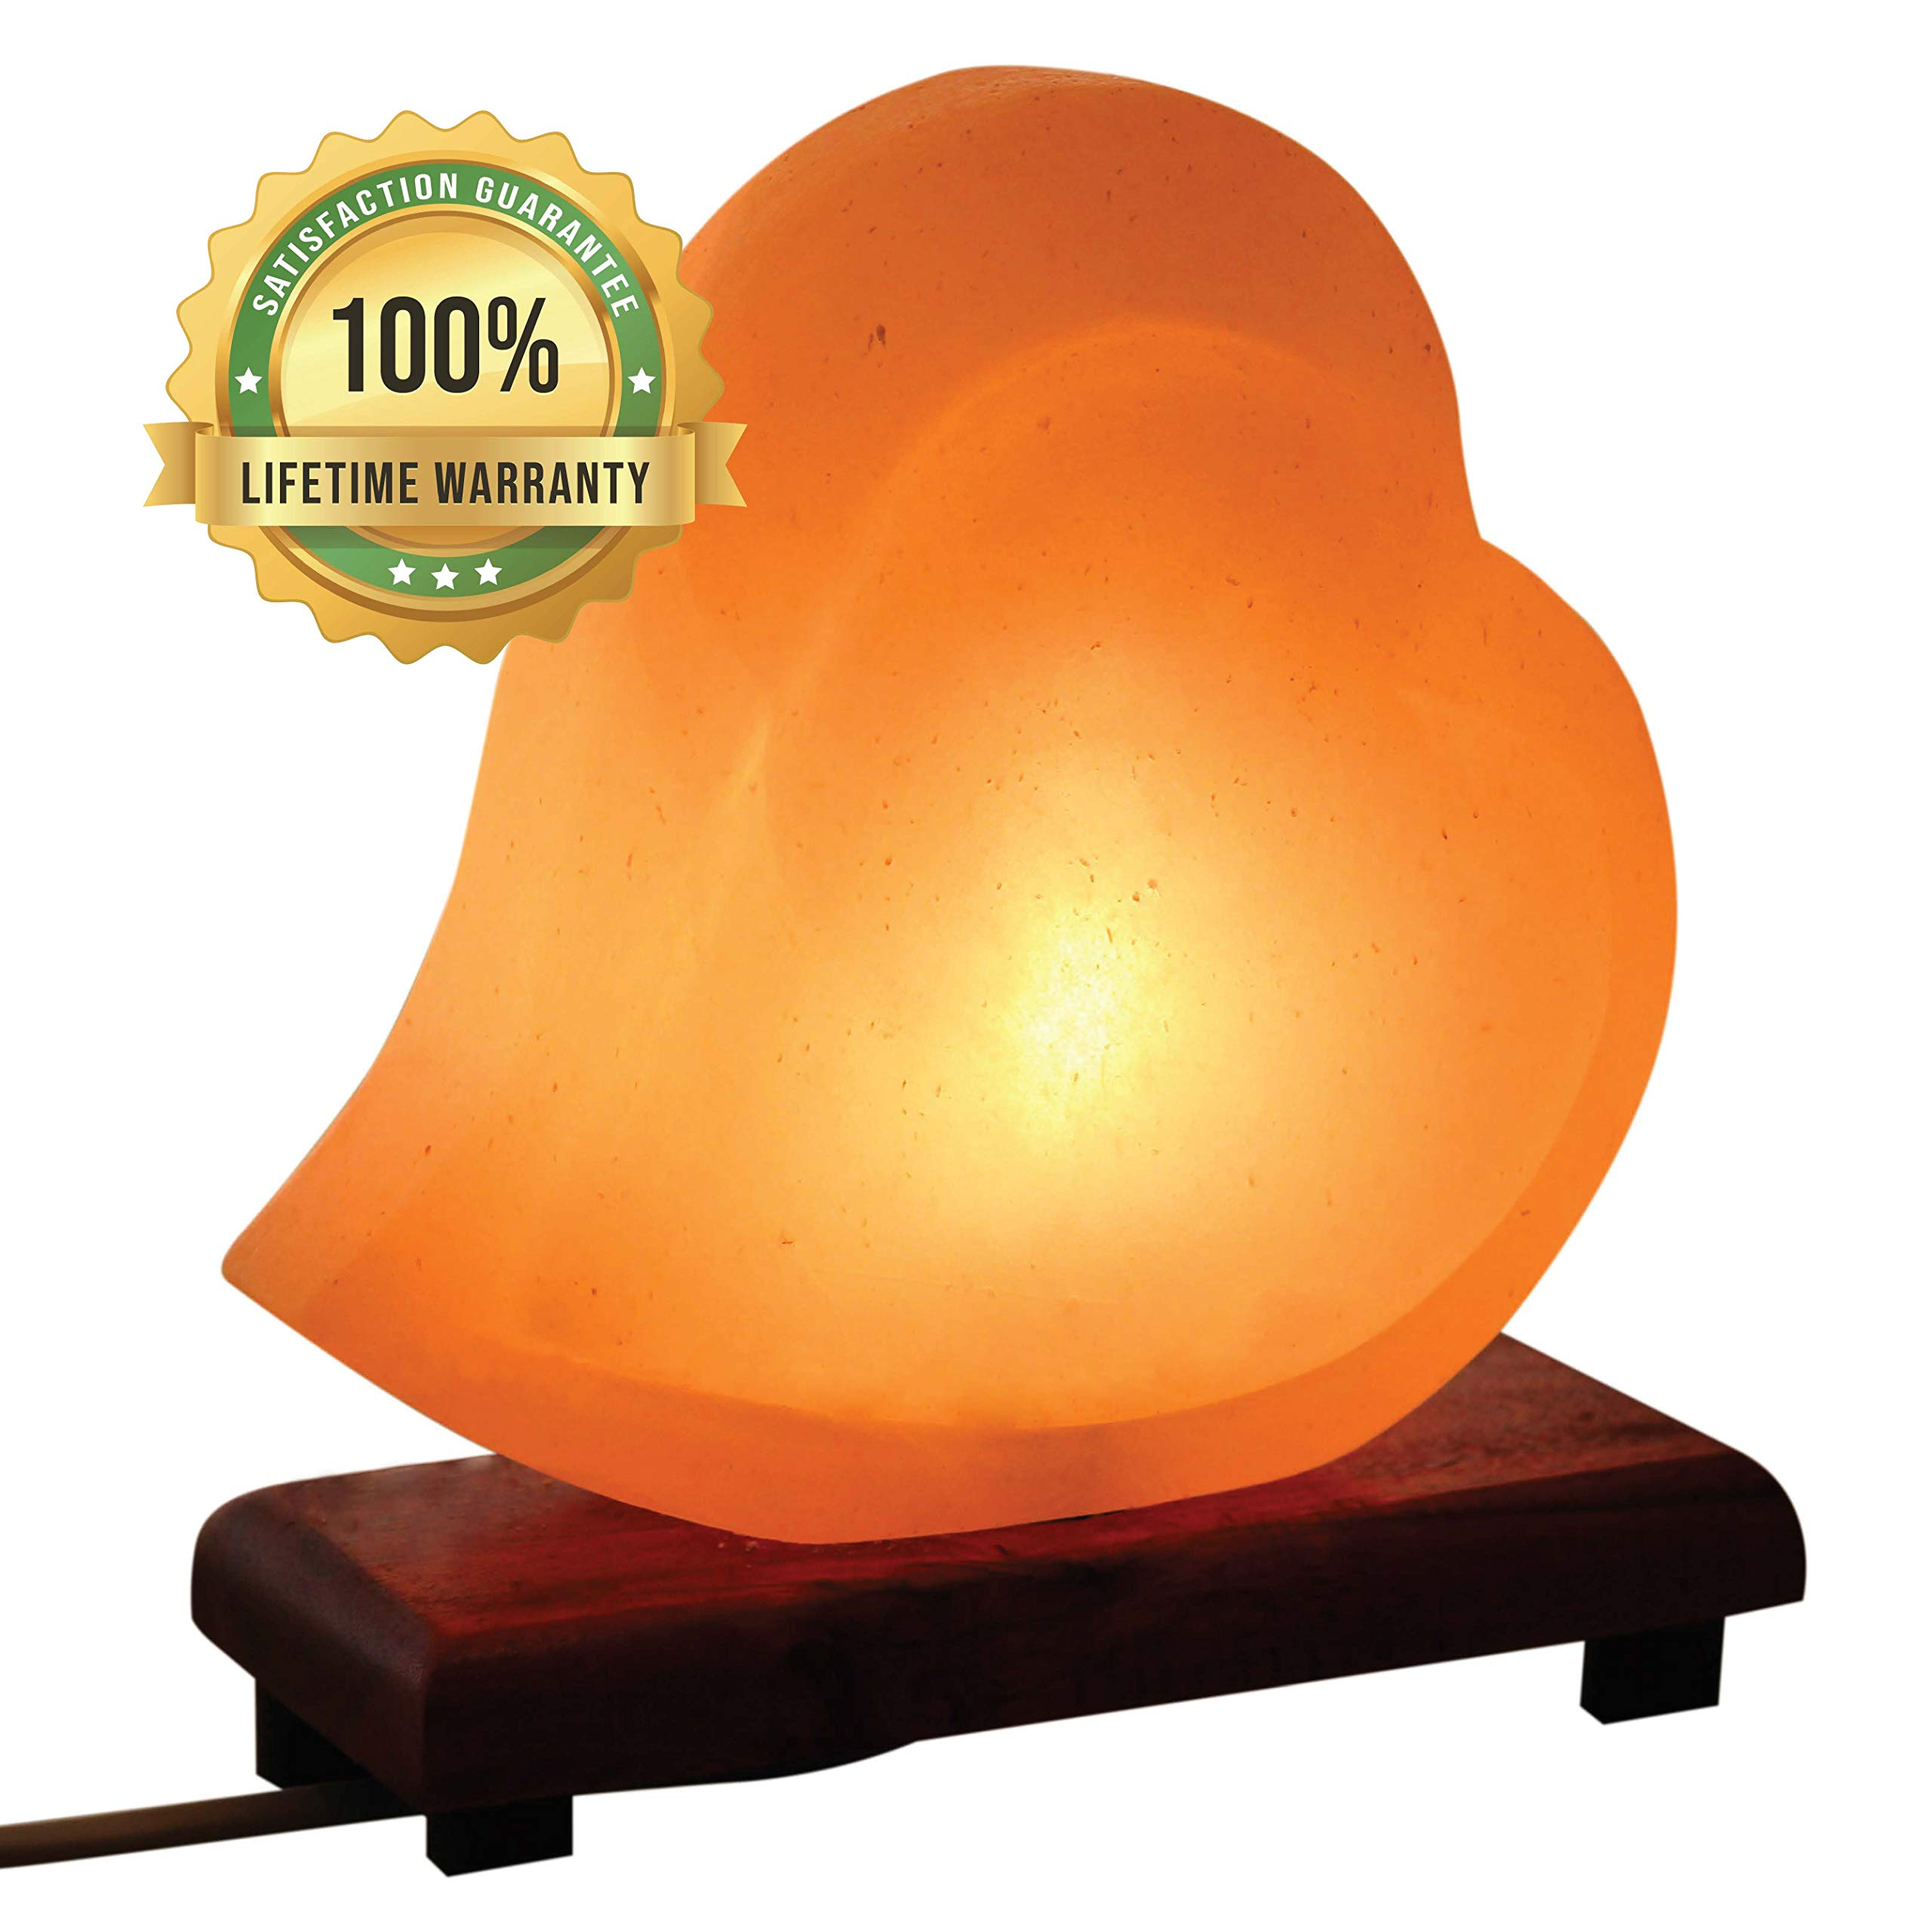 Mockins Hand Crafted Salt Lamp Heart Shape with Beautiful Wood Base -Includes Dimmer and Light Bulbs | Great Adult Night Lights and Decor by Mockins